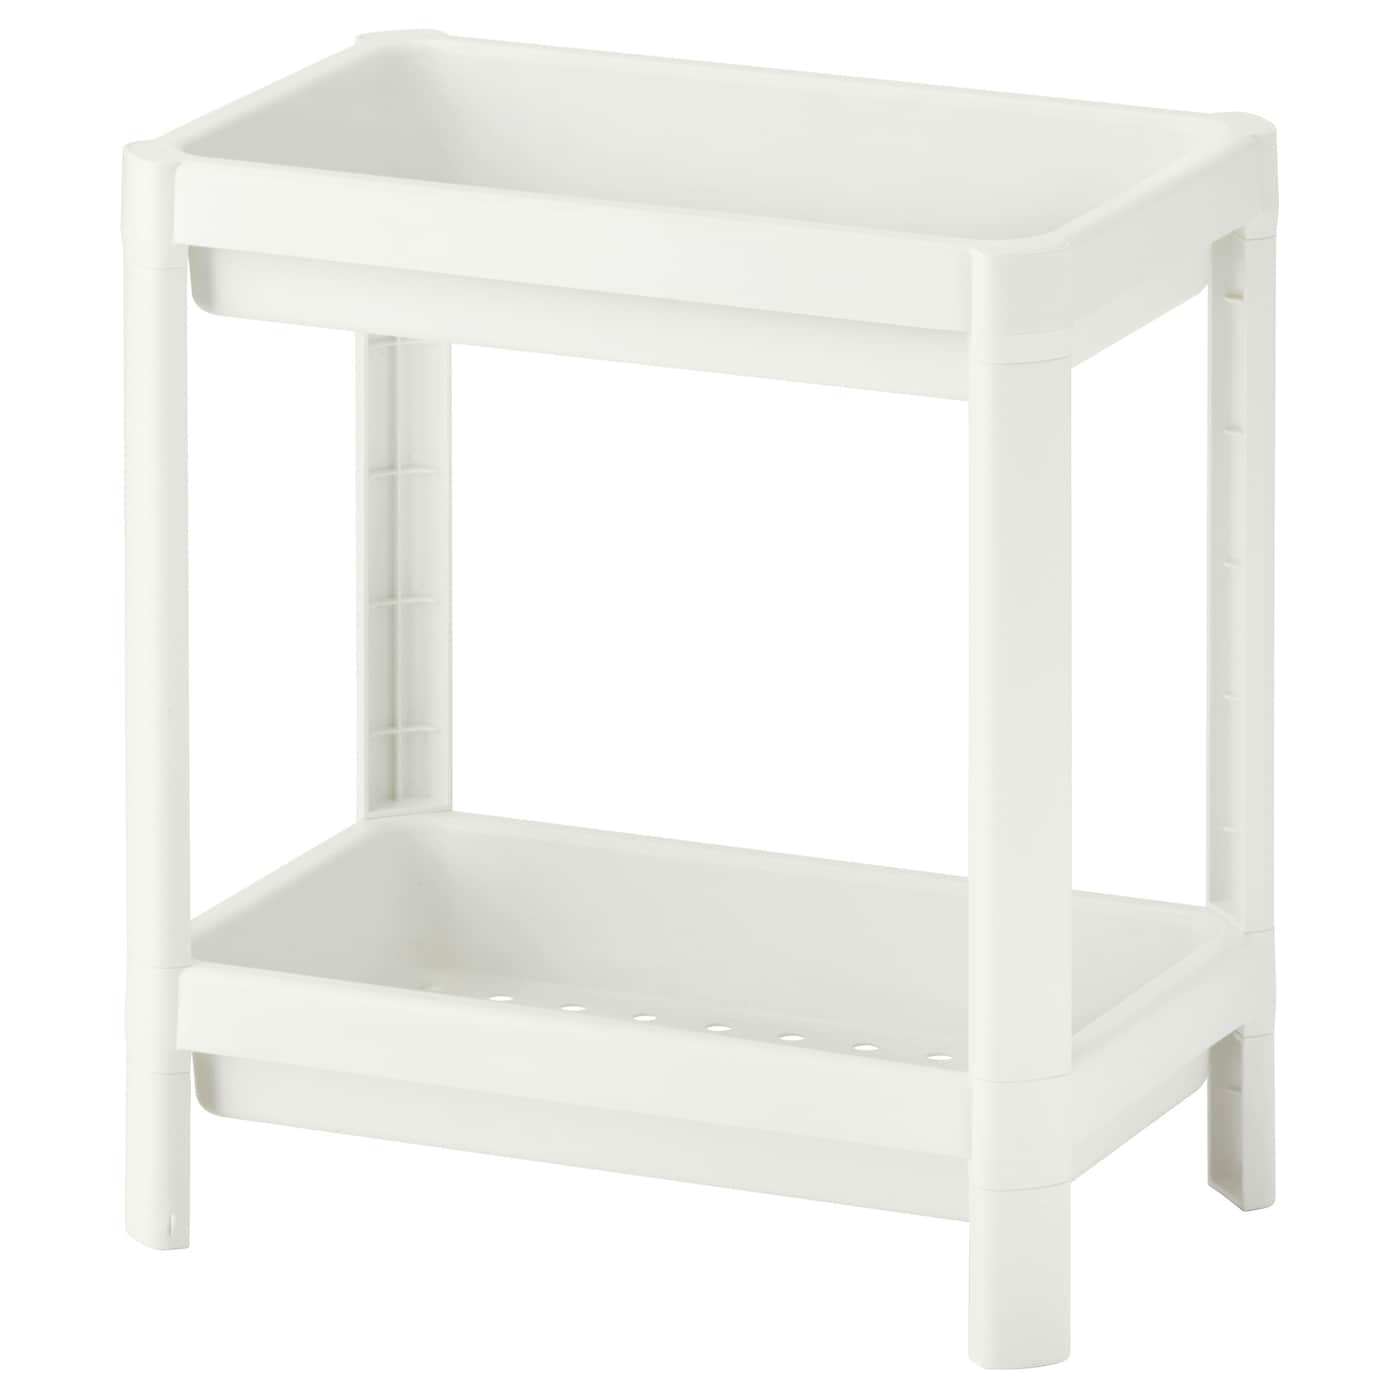 vesken shelf unit white 36 x 23 x 40 cm ikea